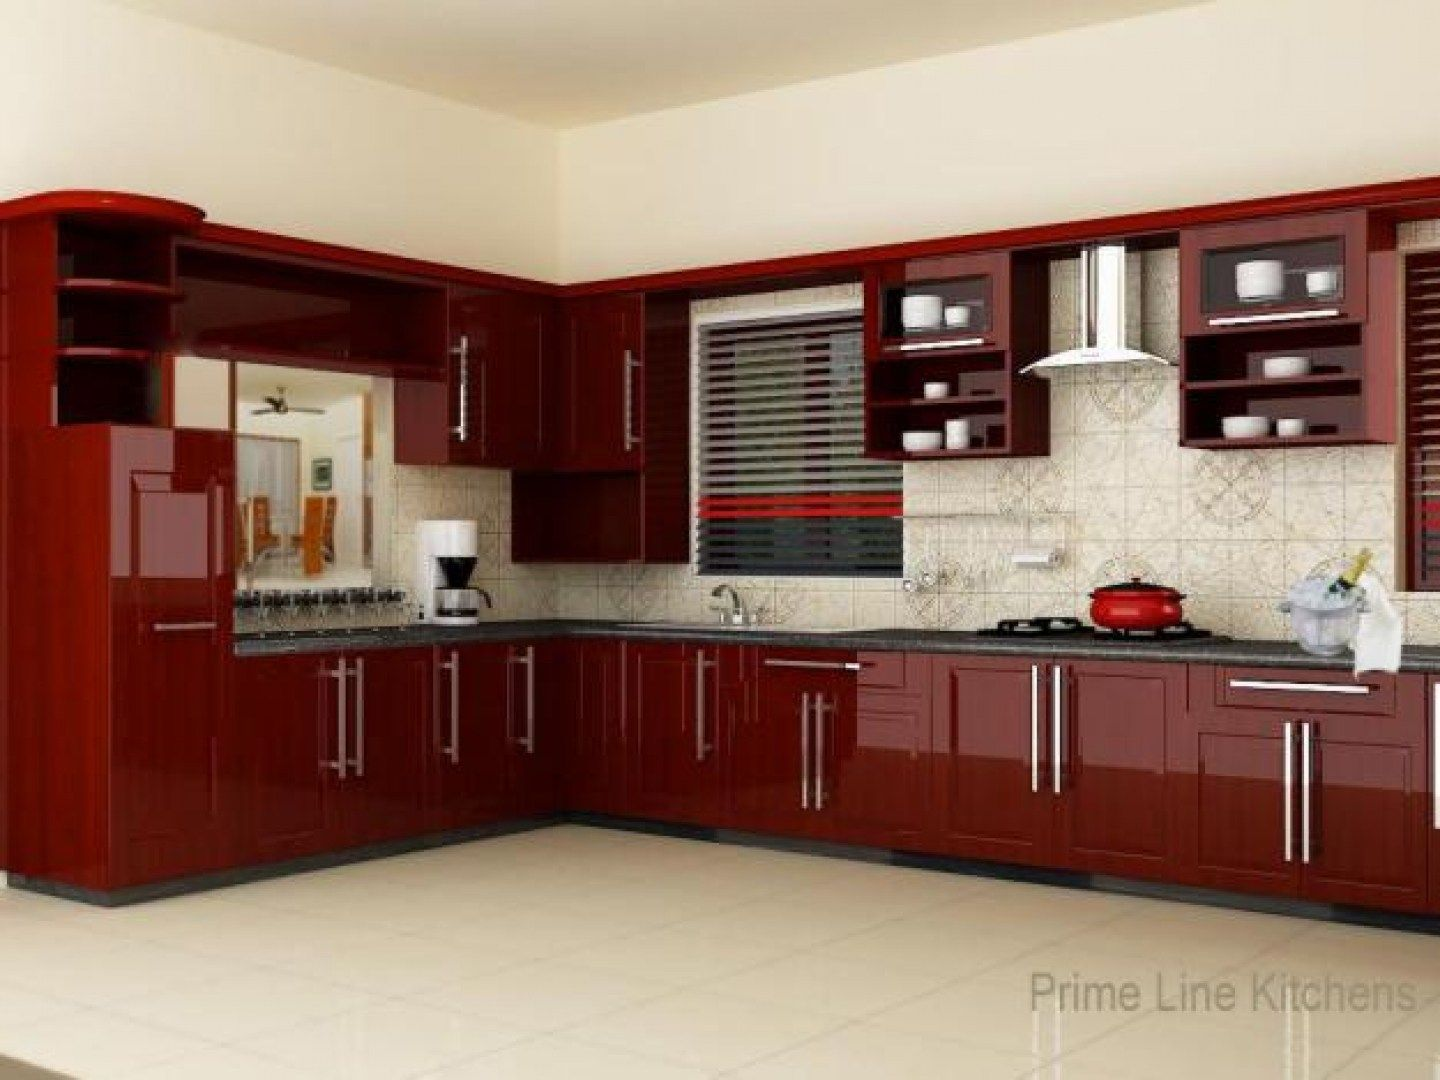 Kitchen Design Cabinet Prepossessing Kitchen Design Ideas Kitchen Woodwork Designs Hyderabad Download Review